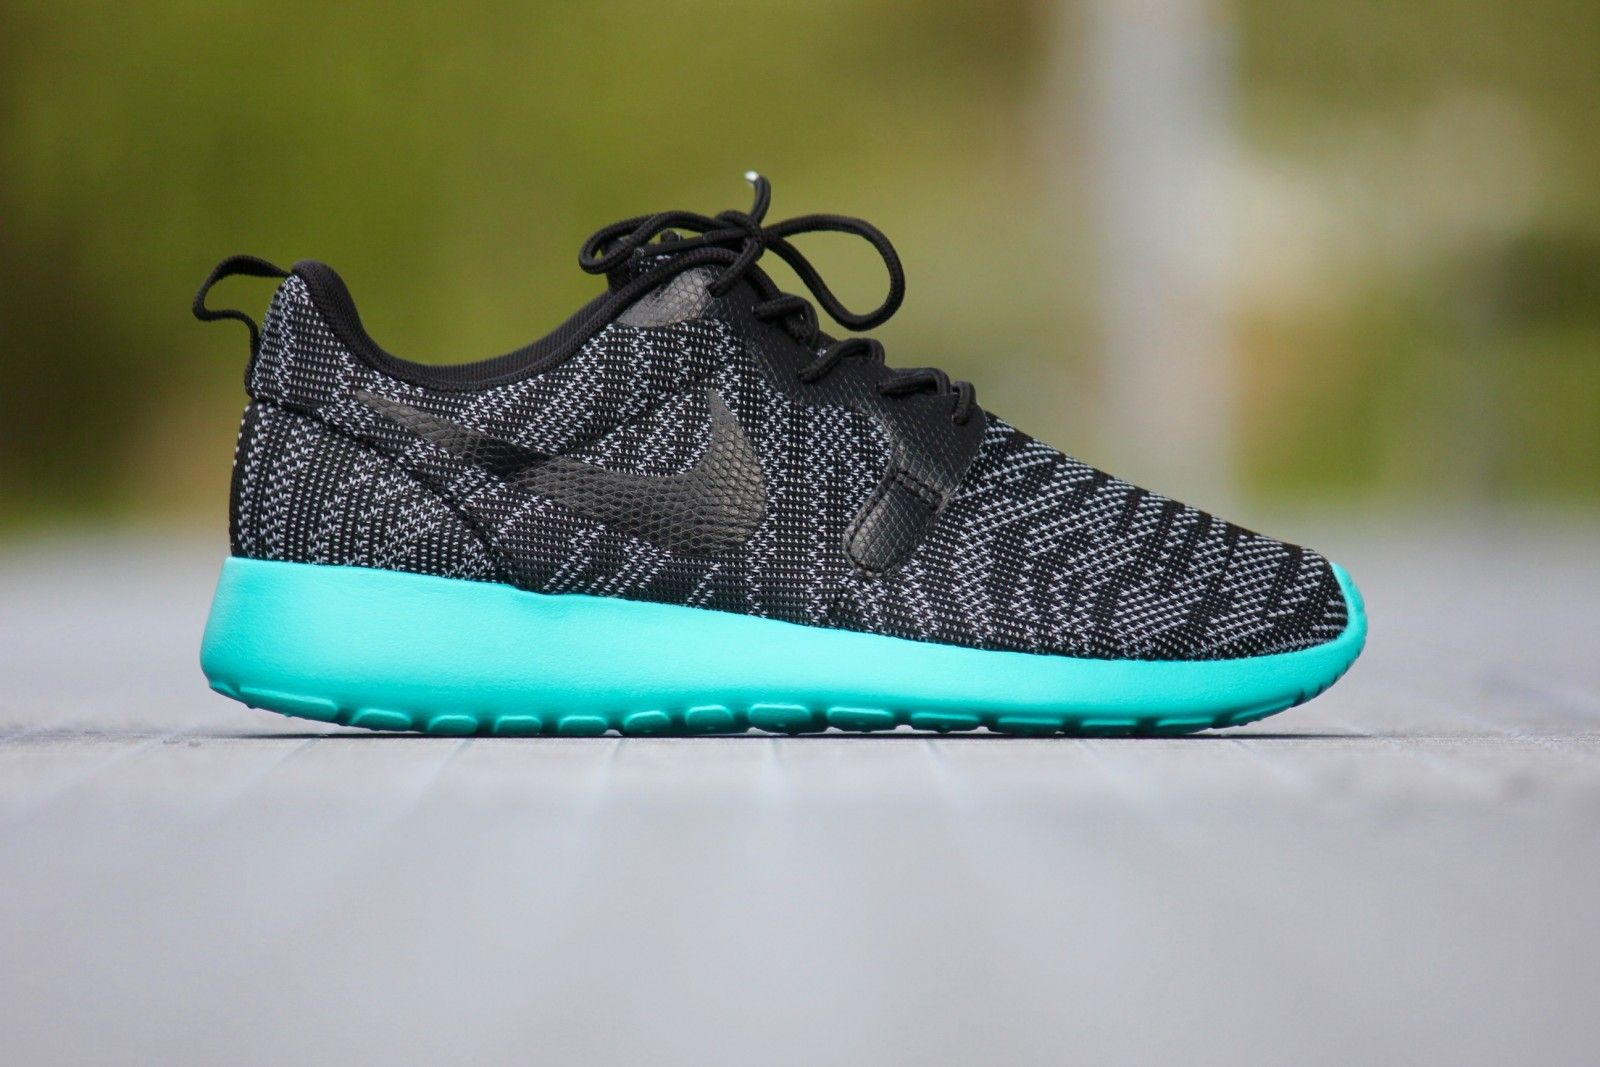 New and discount New Roshe One Knit Jacquard Black Aquamarine for Women  Shoes are available. online store shop best white roshe run at lowest  prices.